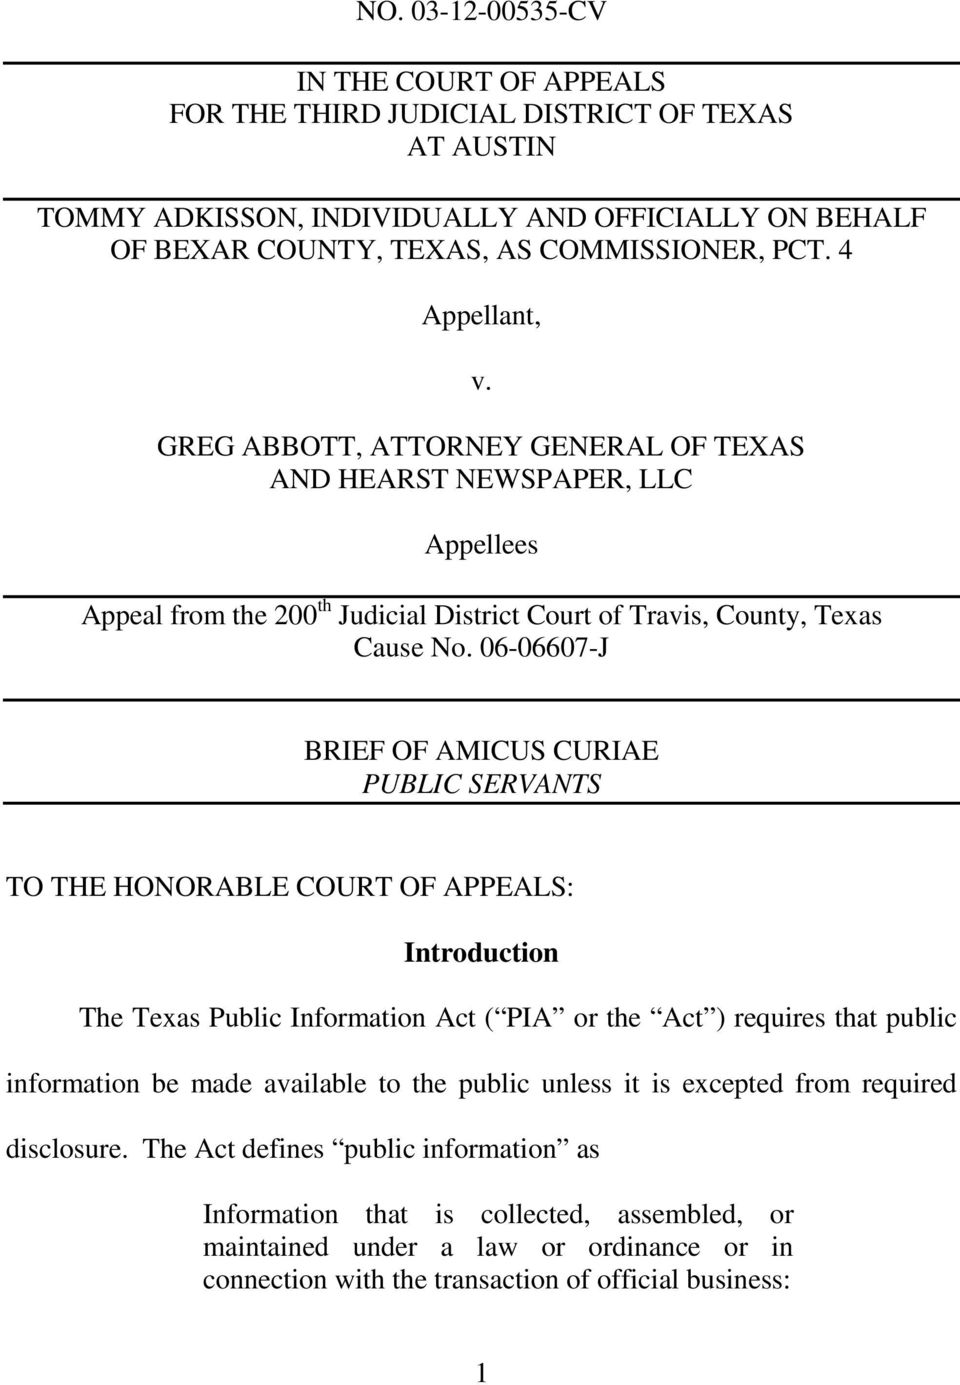 06-06607-J BRIEF OF AMICUS CURIAE PUBLIC SERVANTS TO THE HONORABLE COURT OF APPEALS: Introduction The Texas Public Information Act ( PIA or the Act ) requires that public information be made